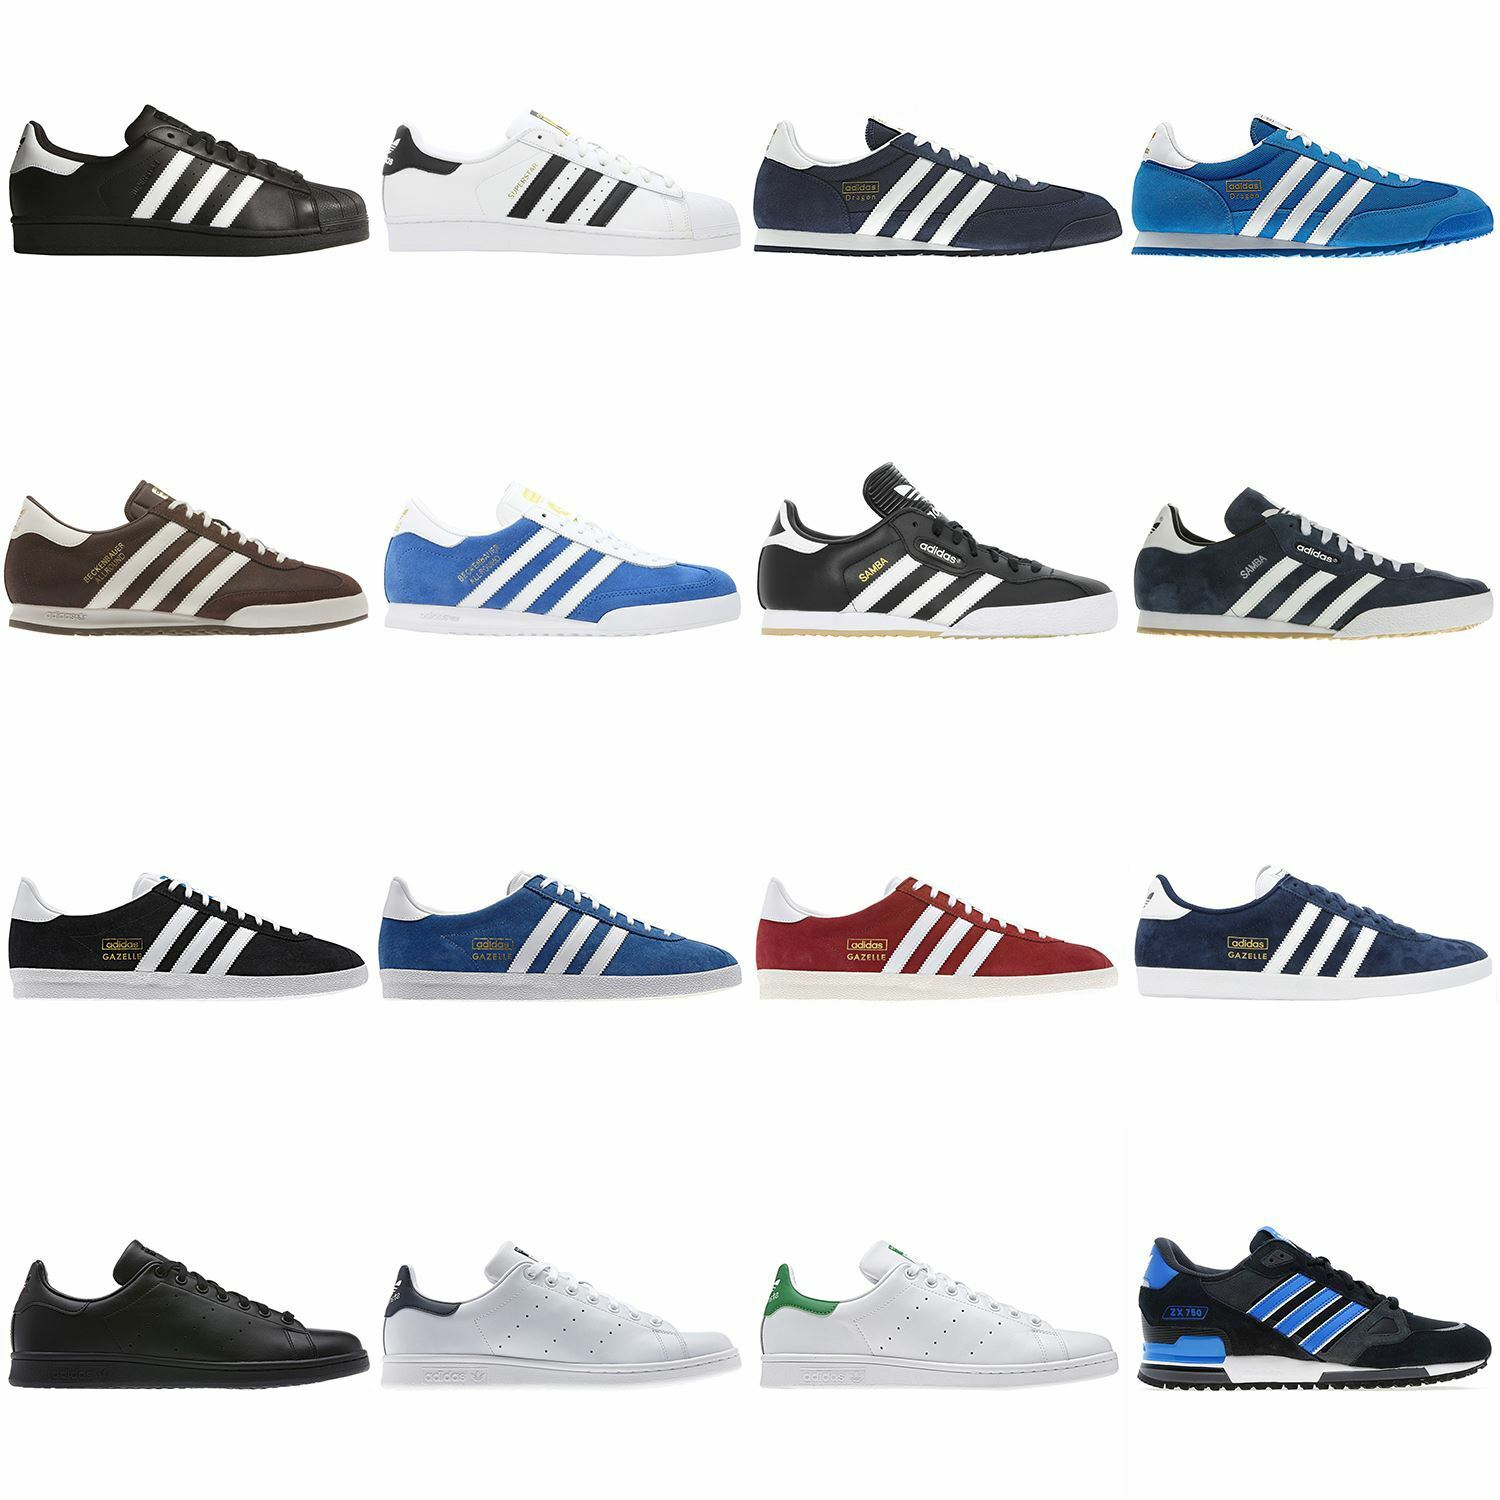 Adidas Tennis Originales Samba Superstar Gazelle Og Dragon Beckenbauer